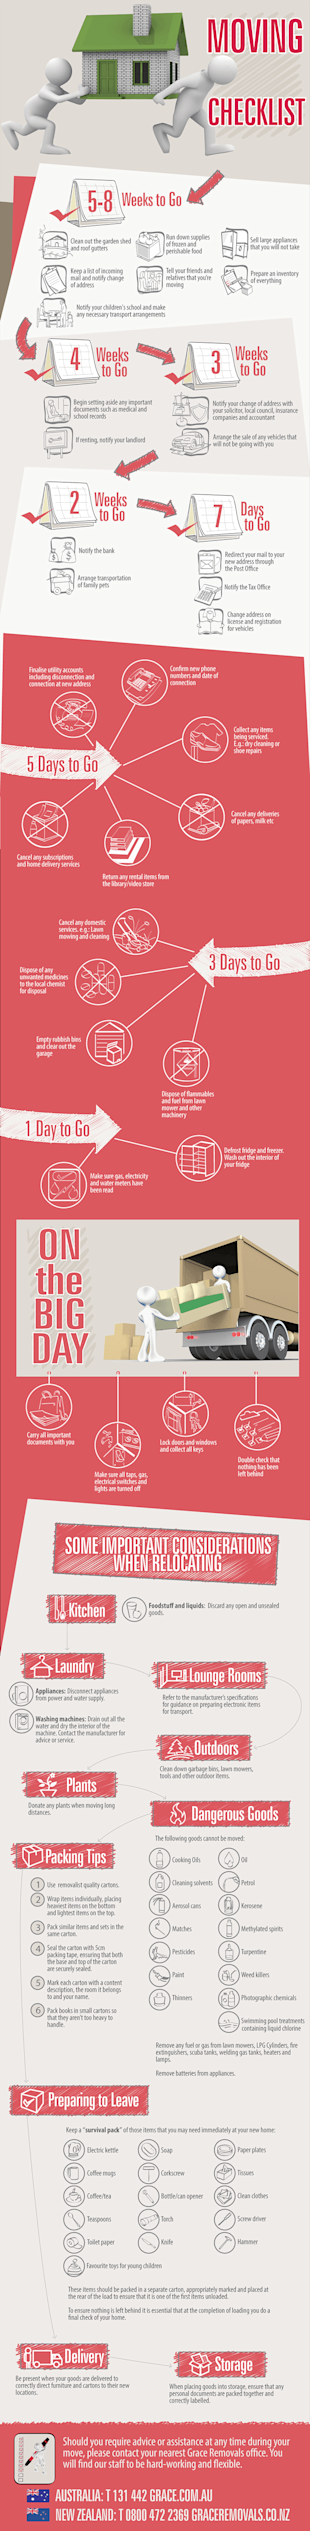 Take The Burden Away From Moving Day image pre move infographic.new